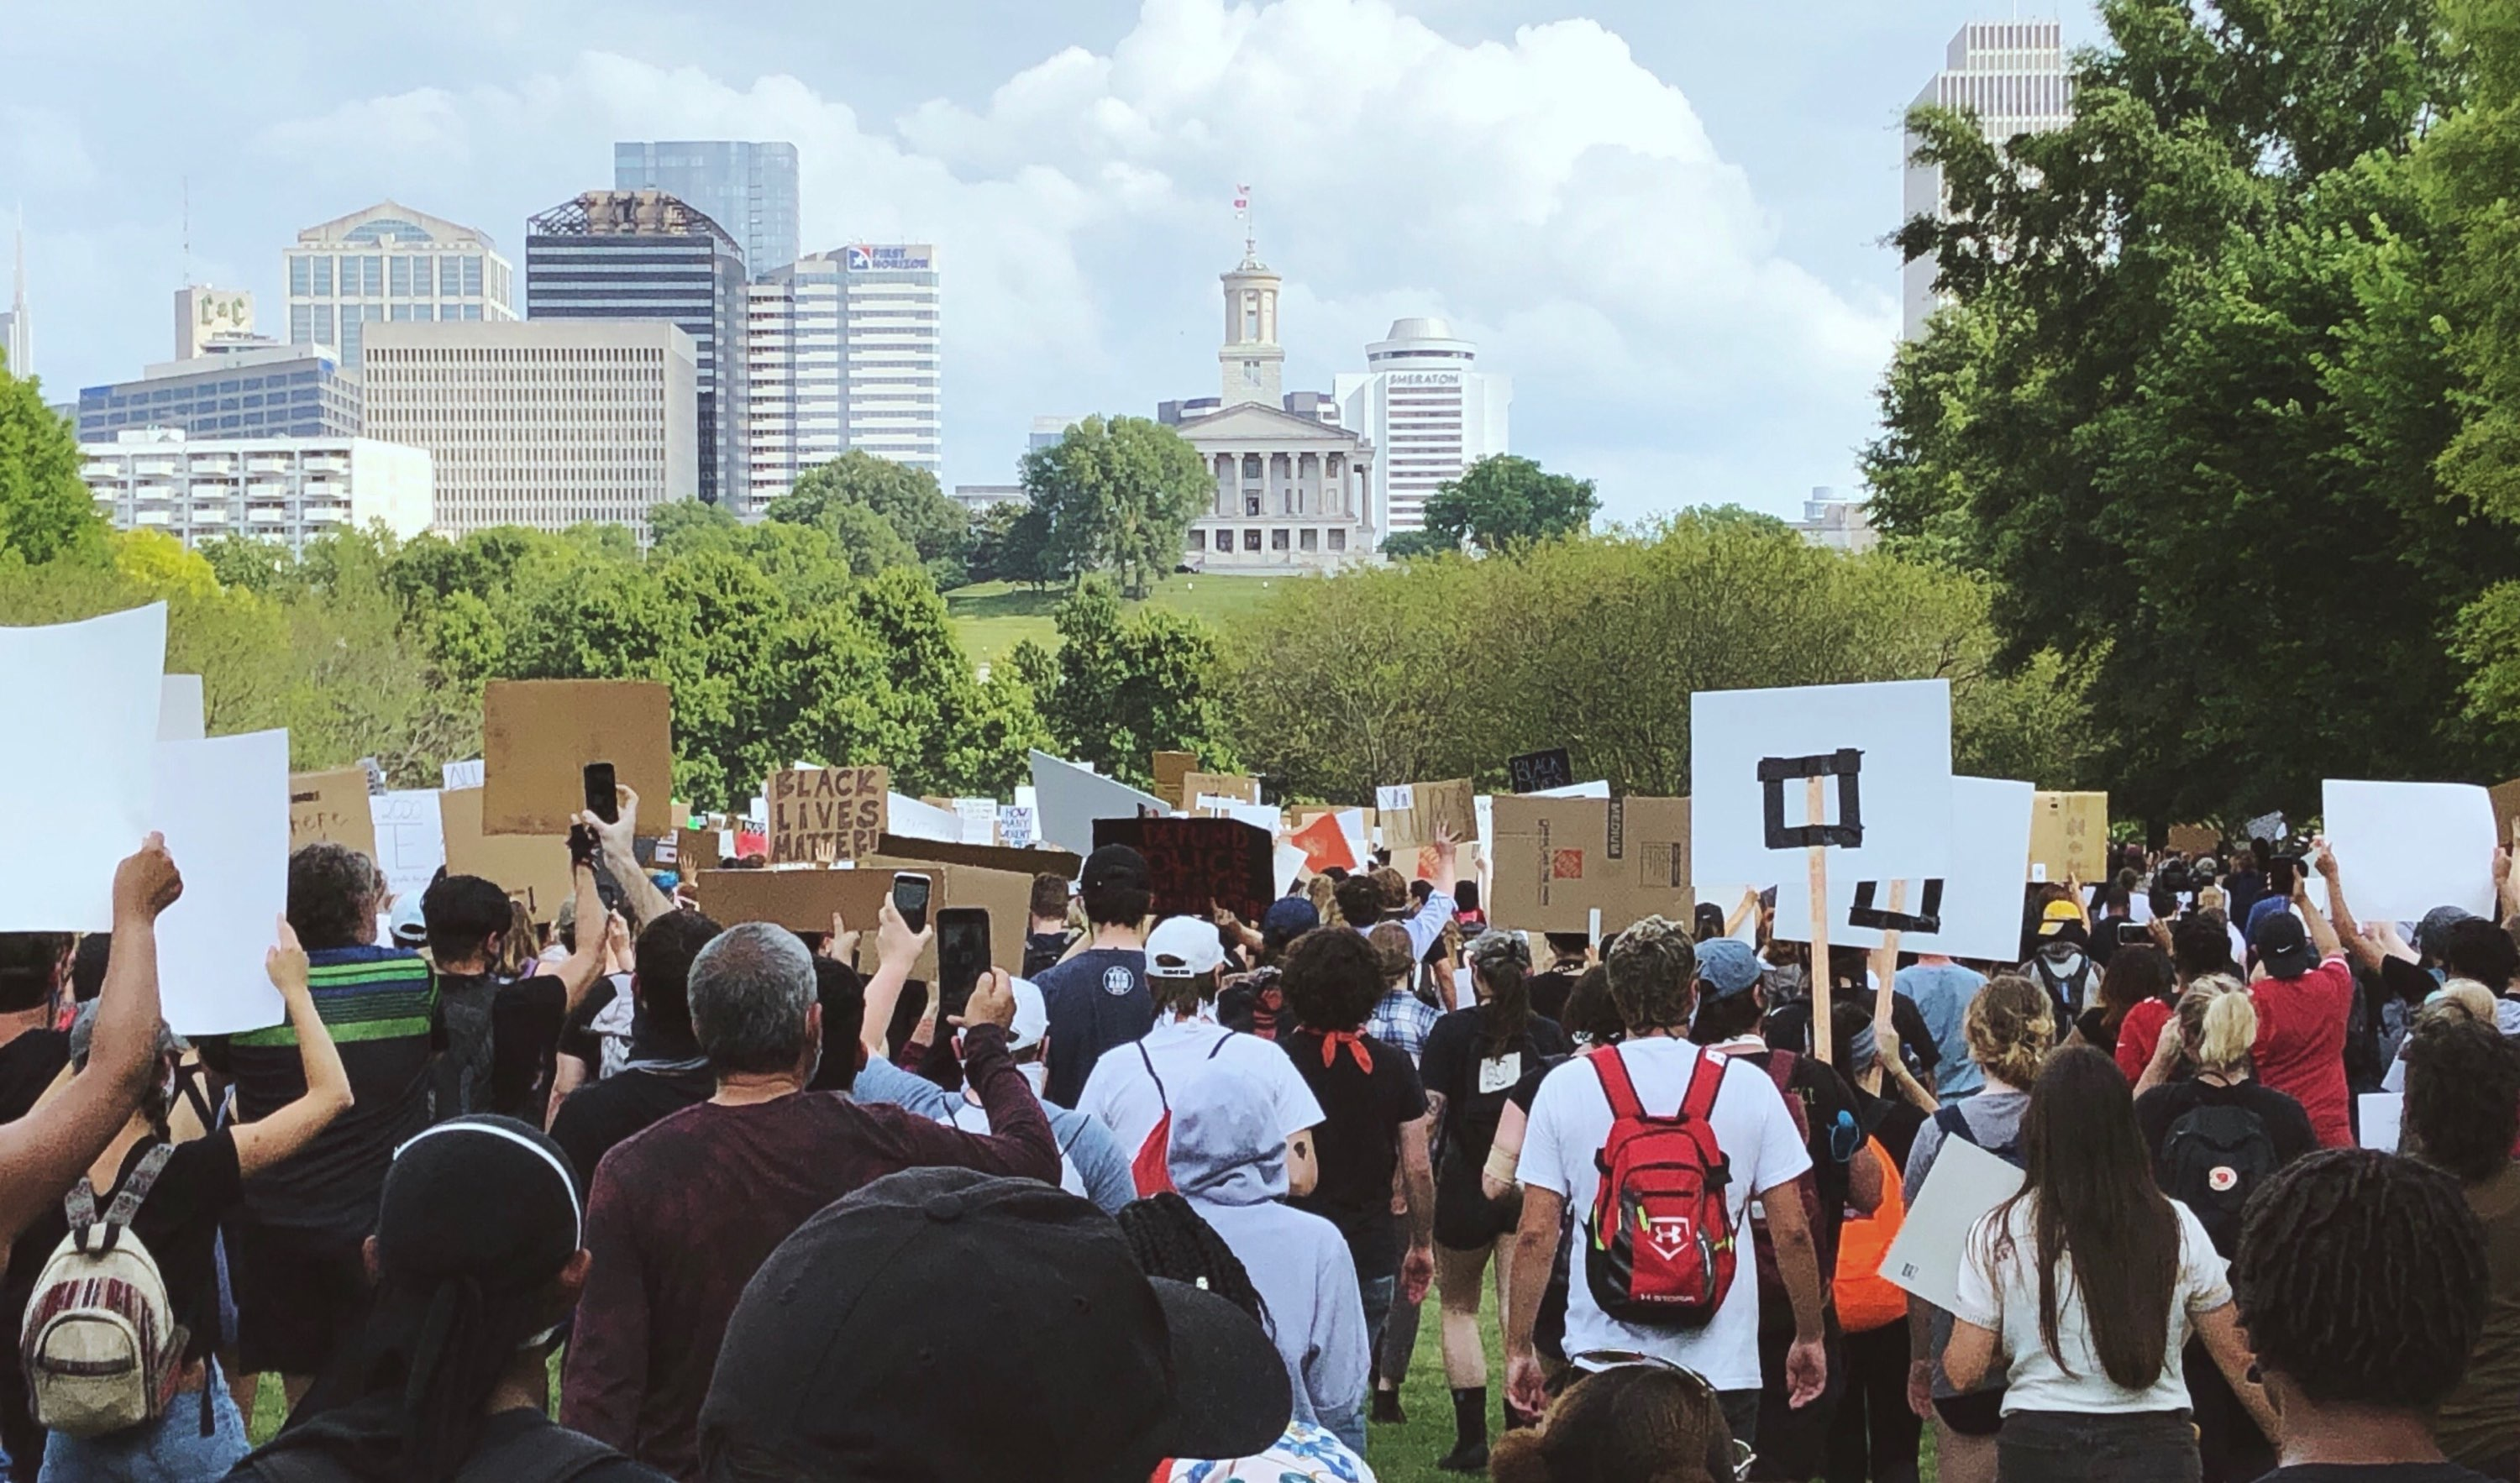 Hundreds of protesters hold signs and march up the Bicentennial Mall toward the Tennessee Capitol building